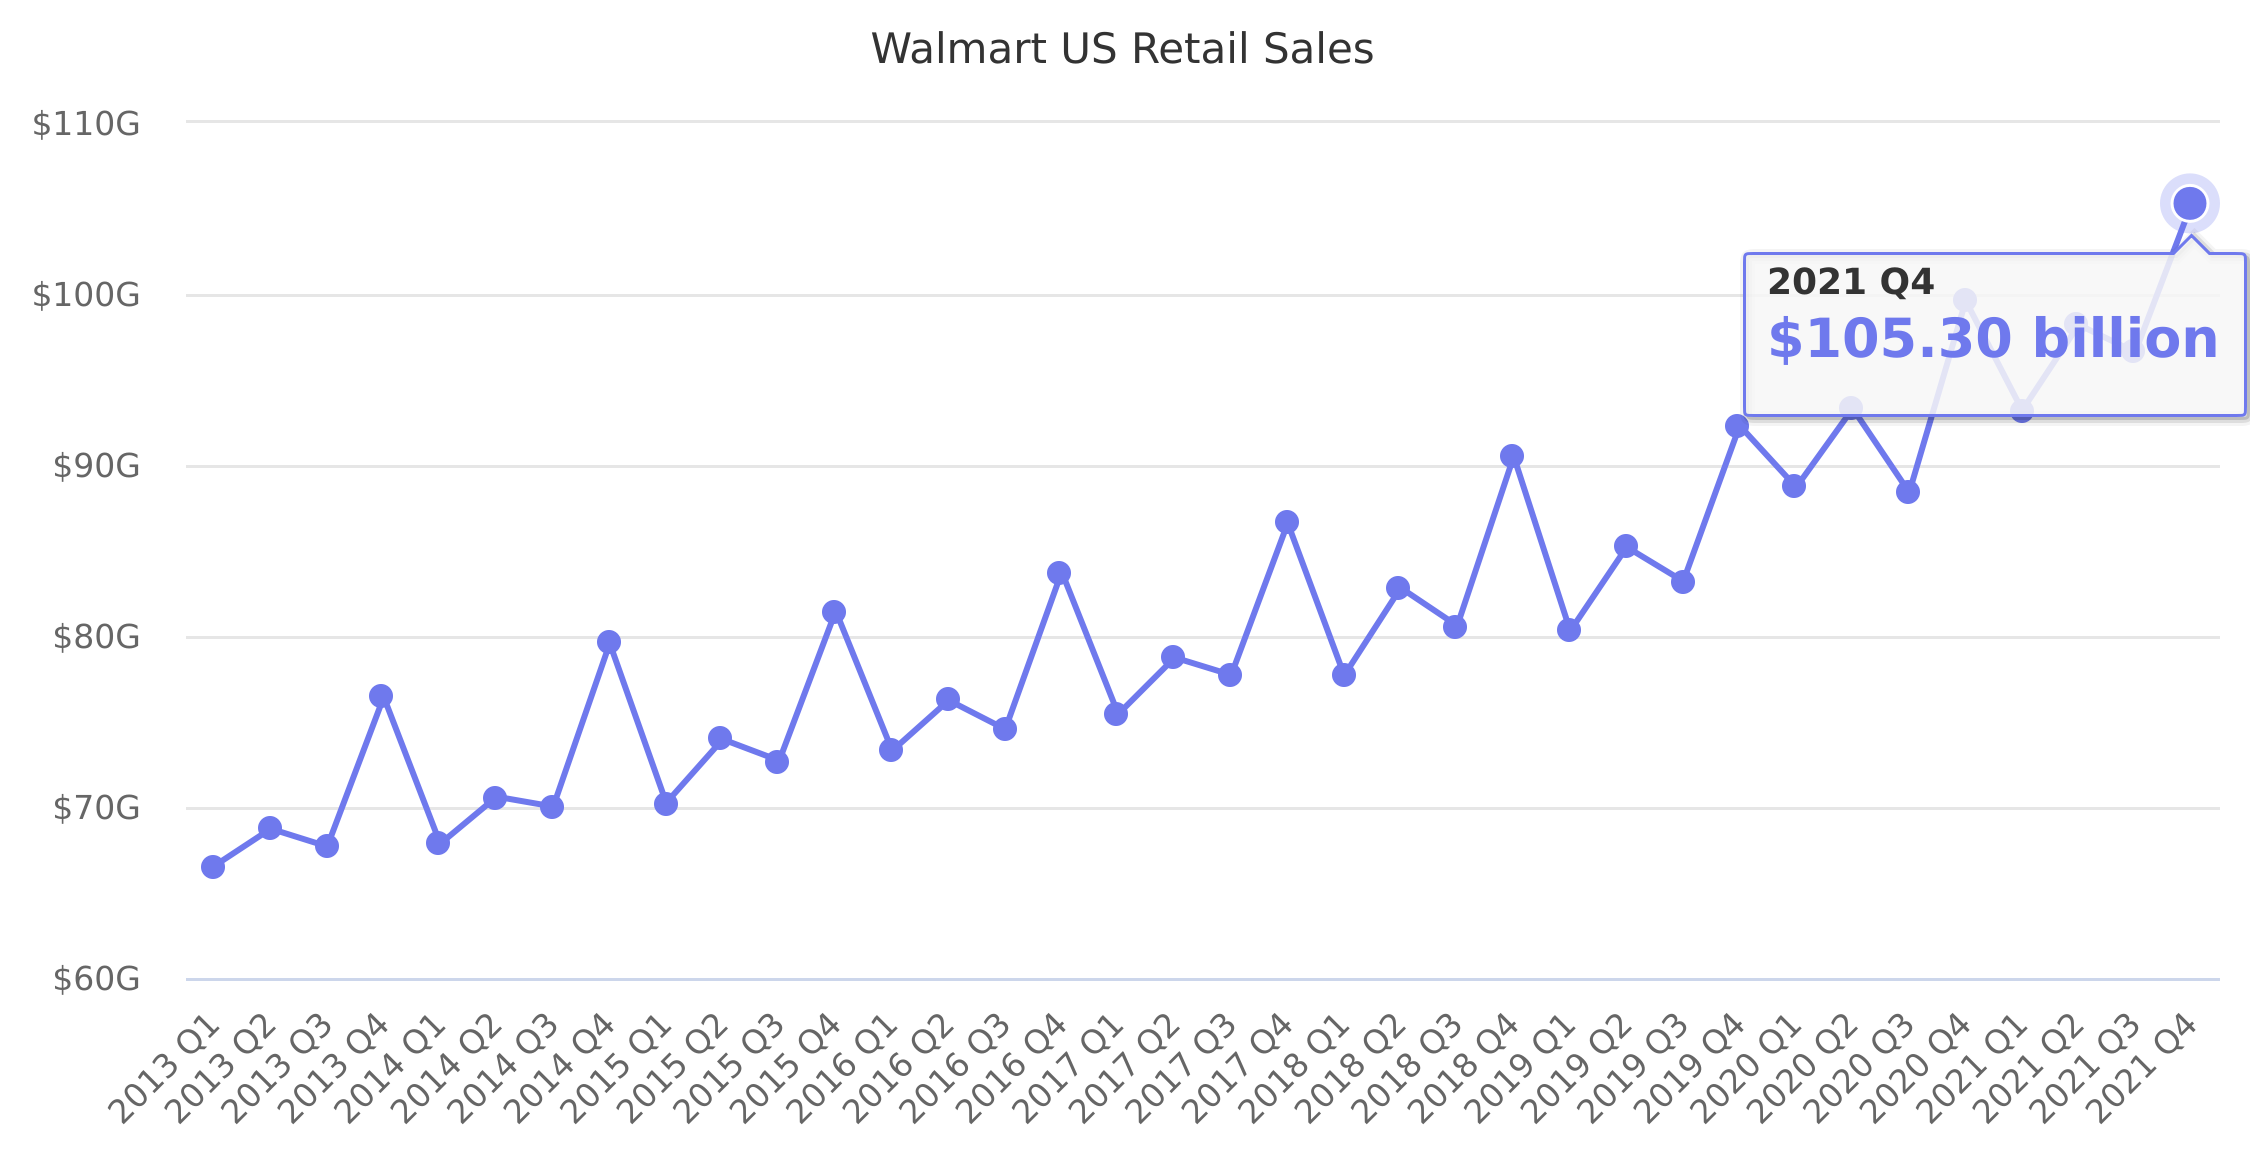 Walmart US Retail Sales 2013-2019